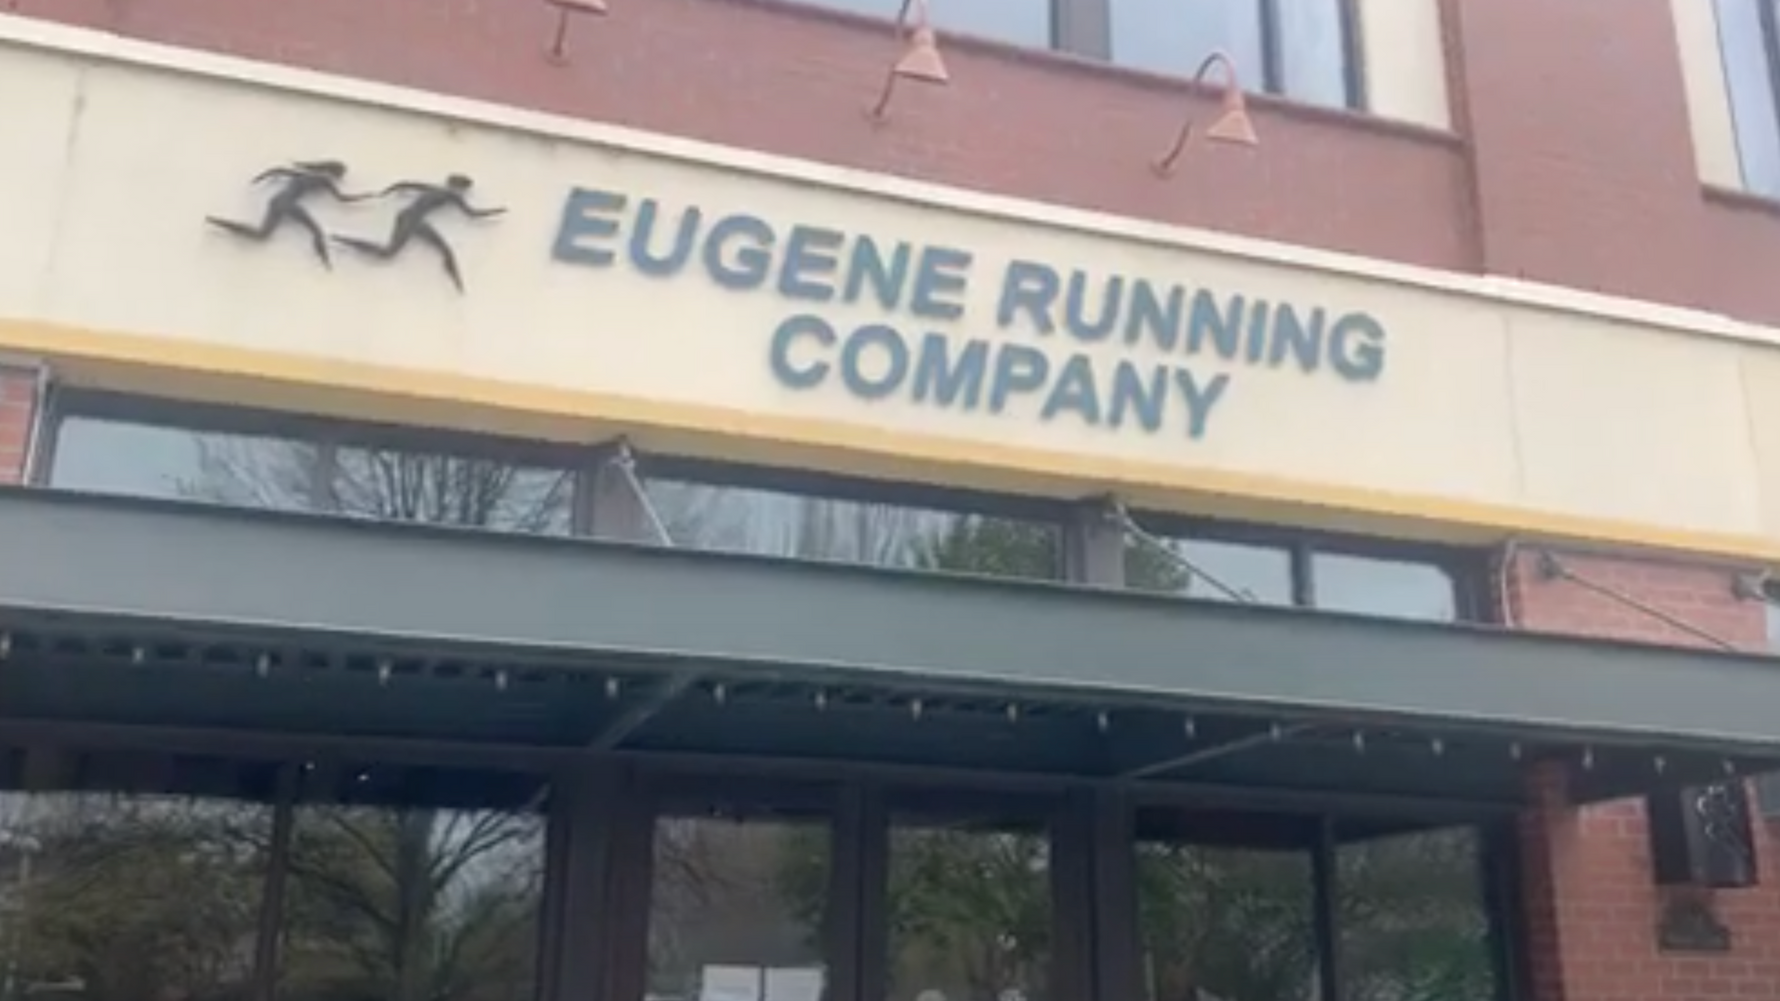 Elements Health Club Eugene Running Co